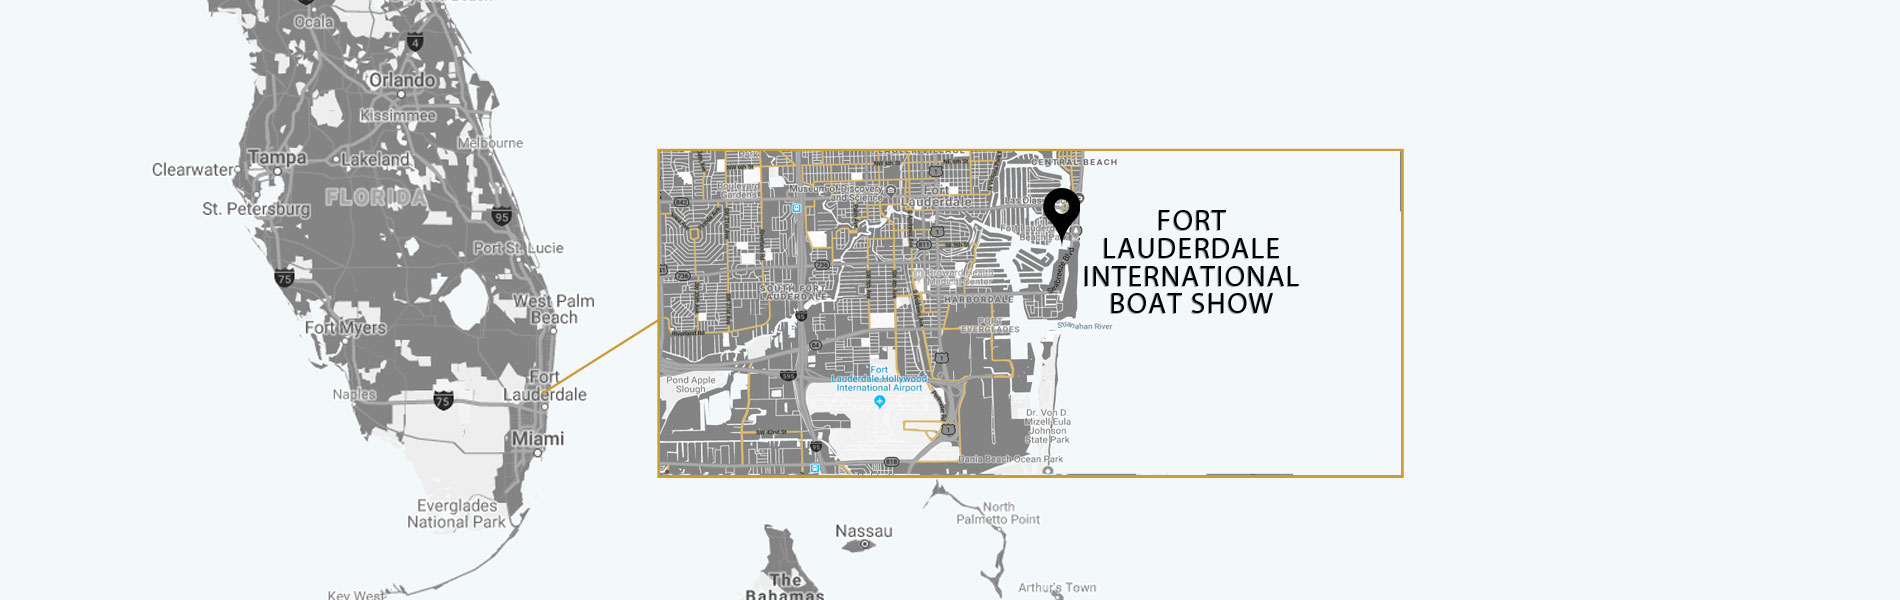 fort lauderdale boat show location map